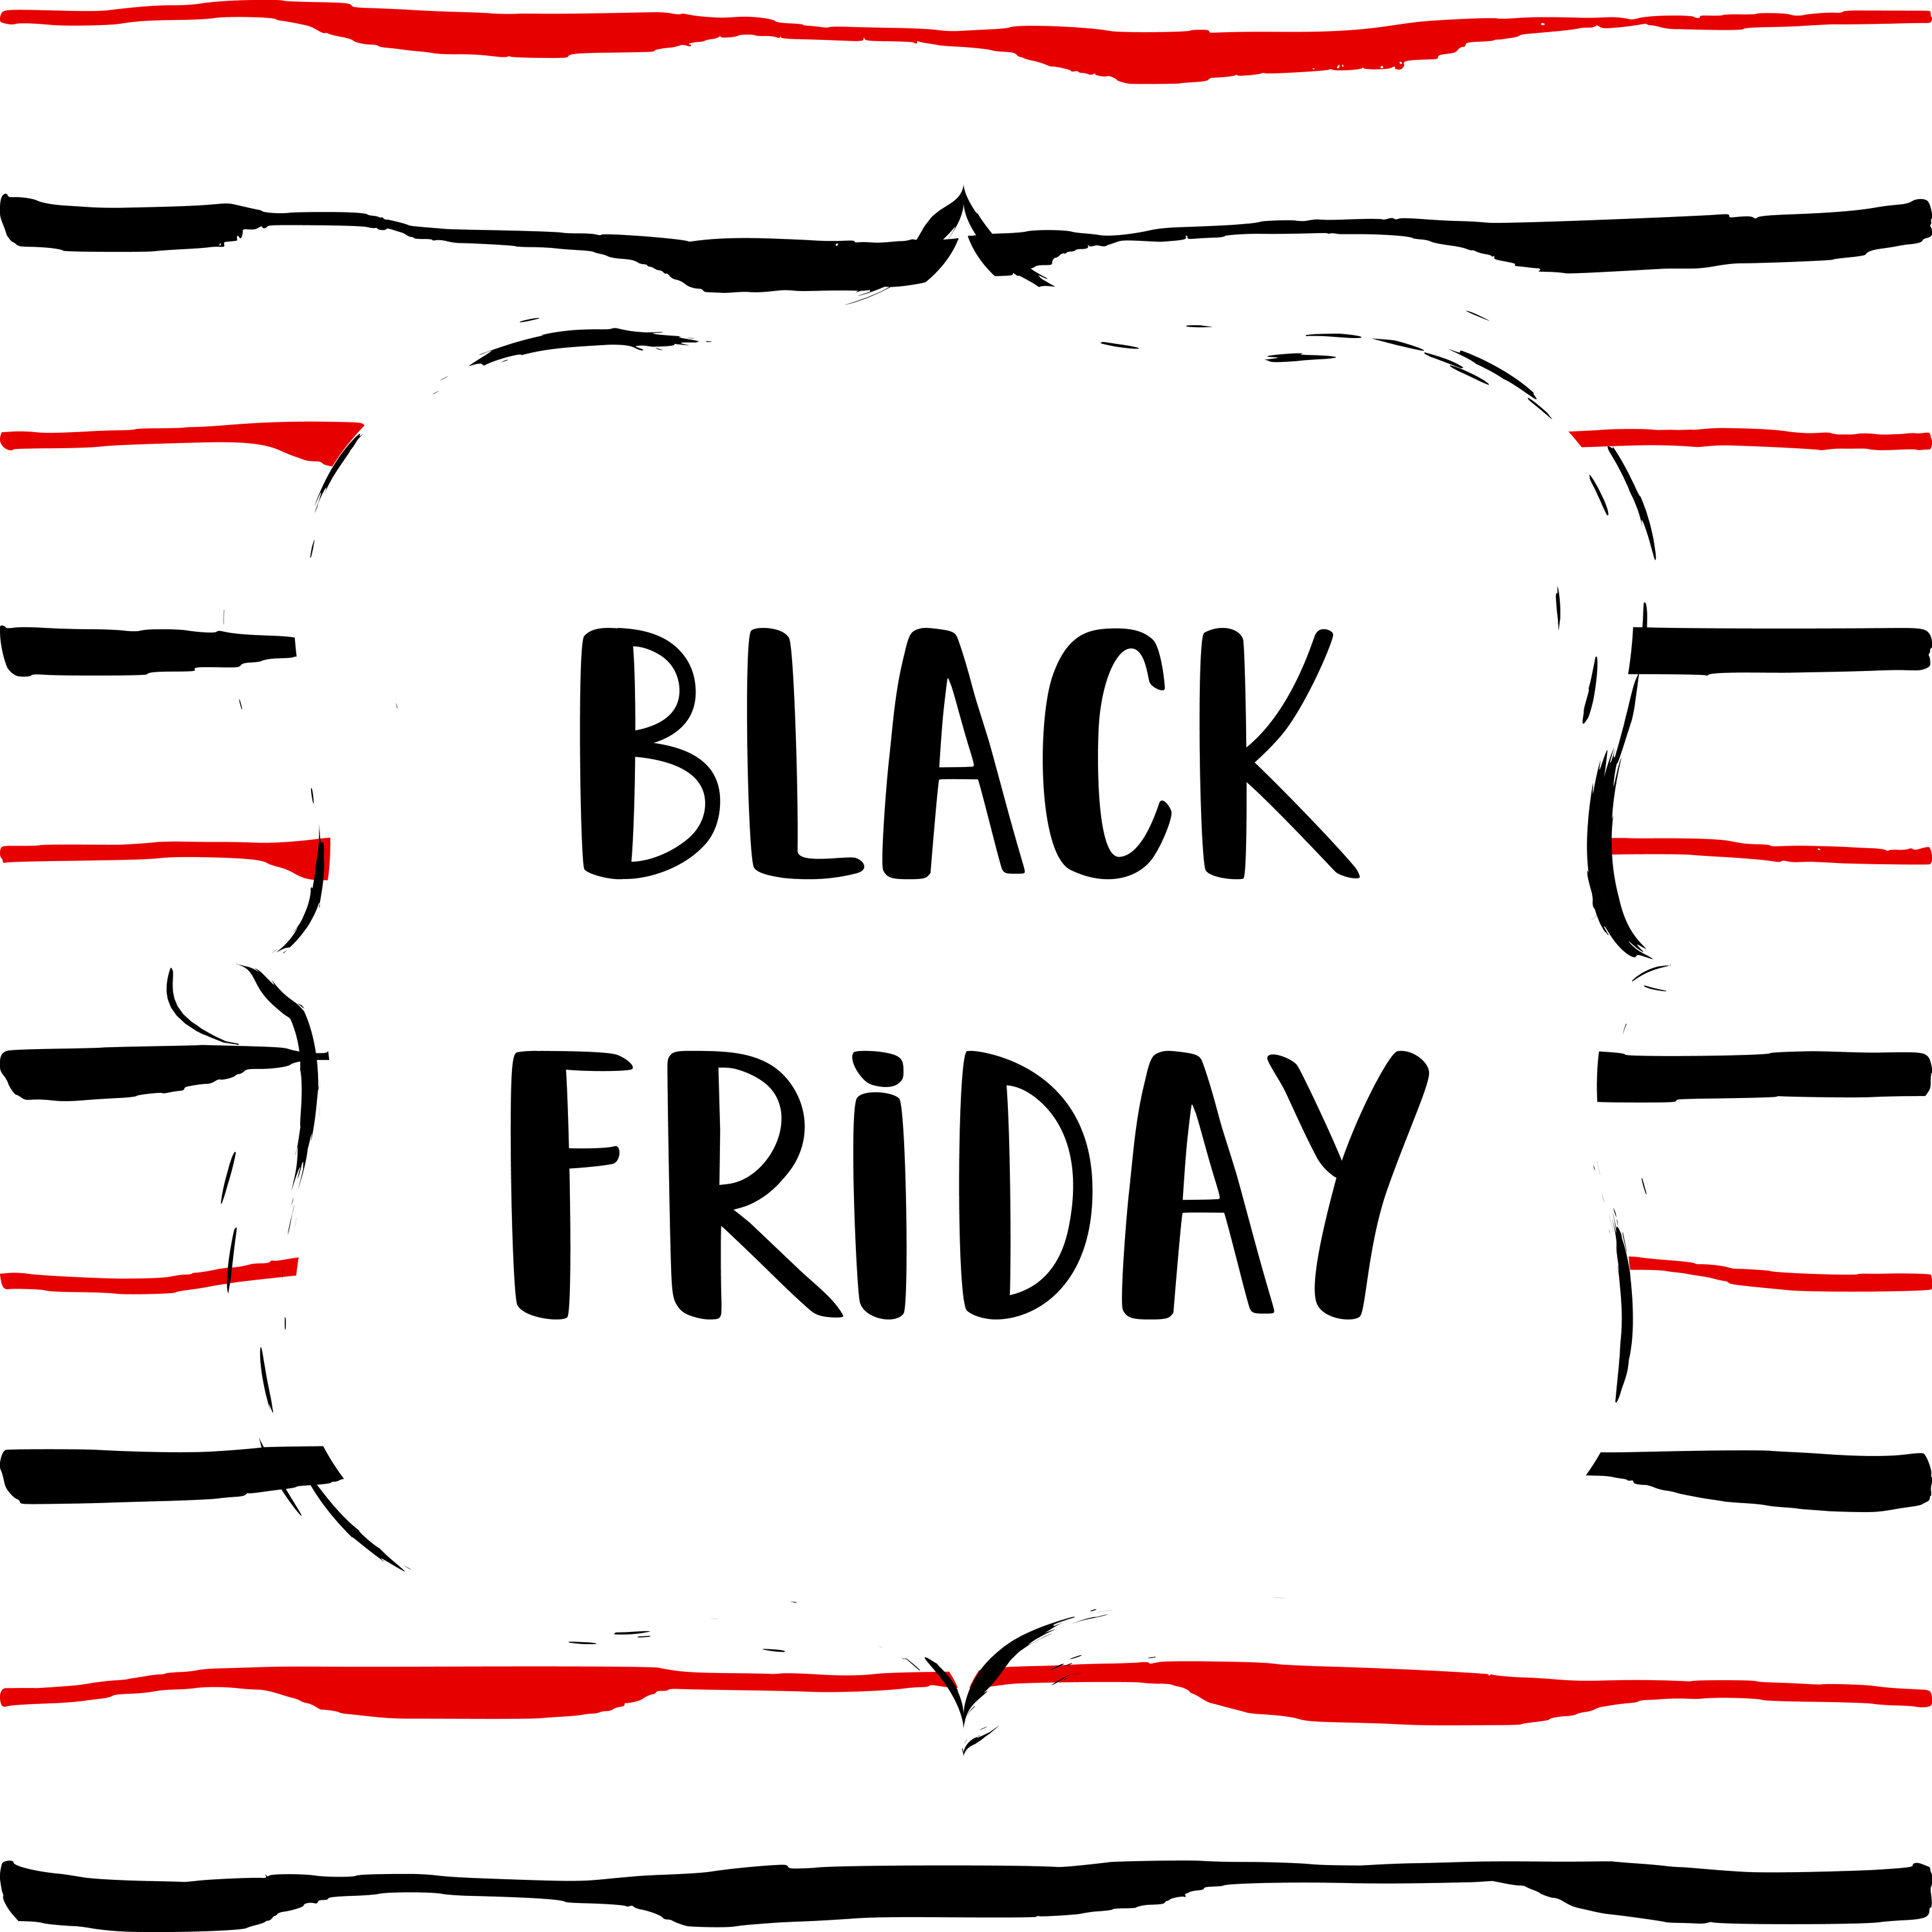 Black Friday Top Deals Top Black Friday And Cyber Monday Tips For 2017 Deals We Like